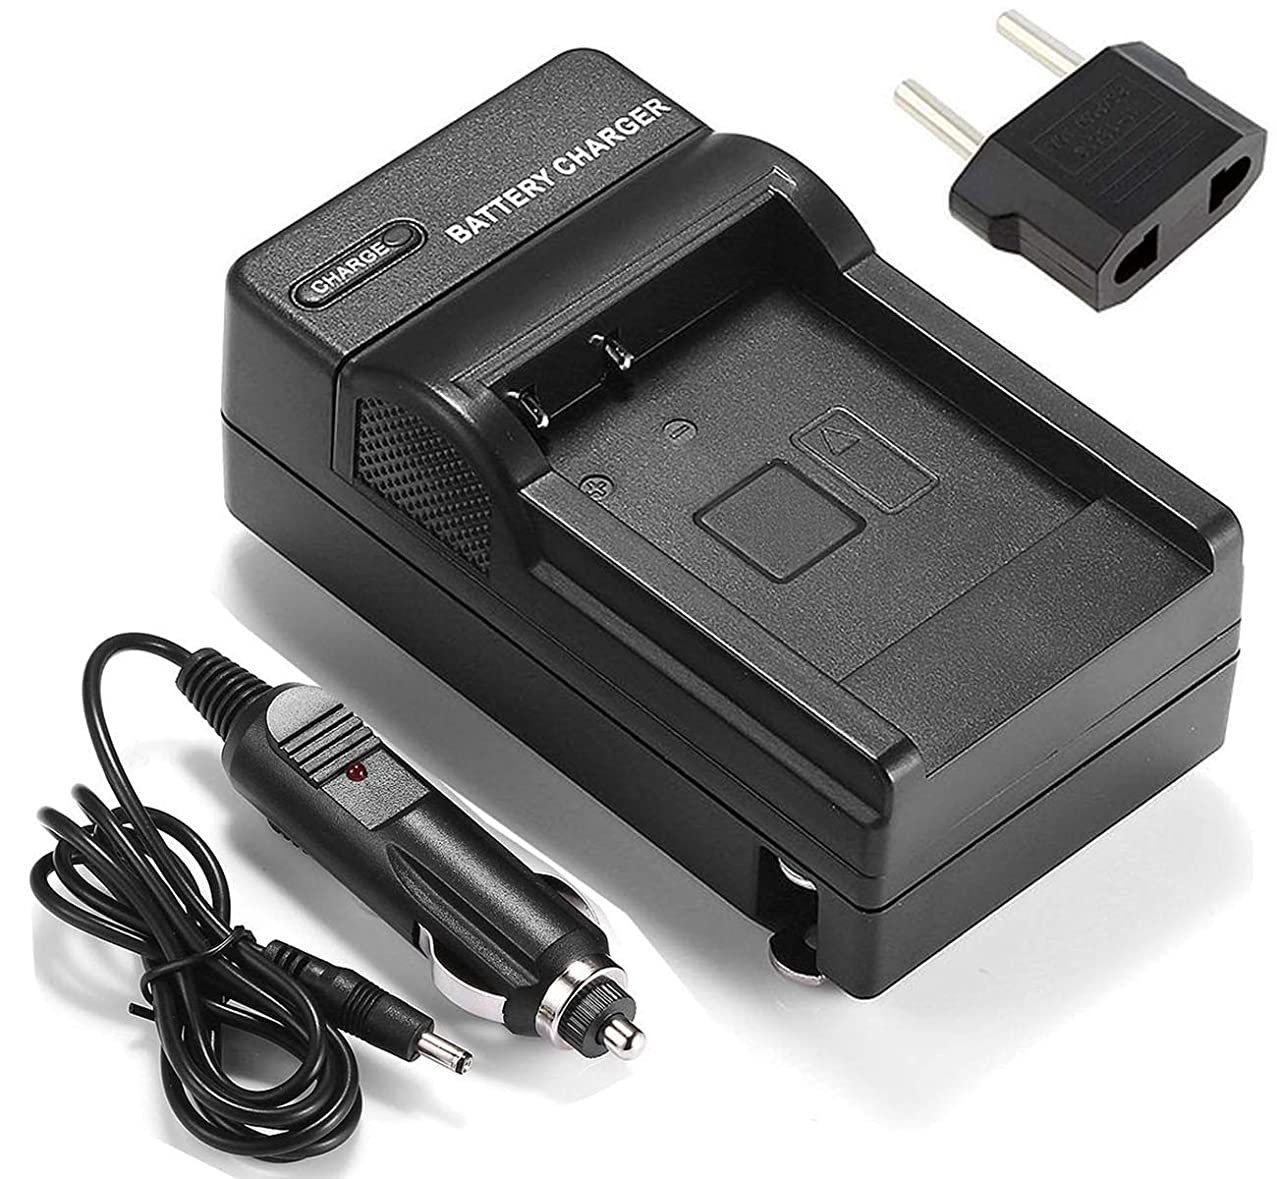 Battery Charger for Canon LEGRIA FS20, FS21, FS22, FS200 Camcorder